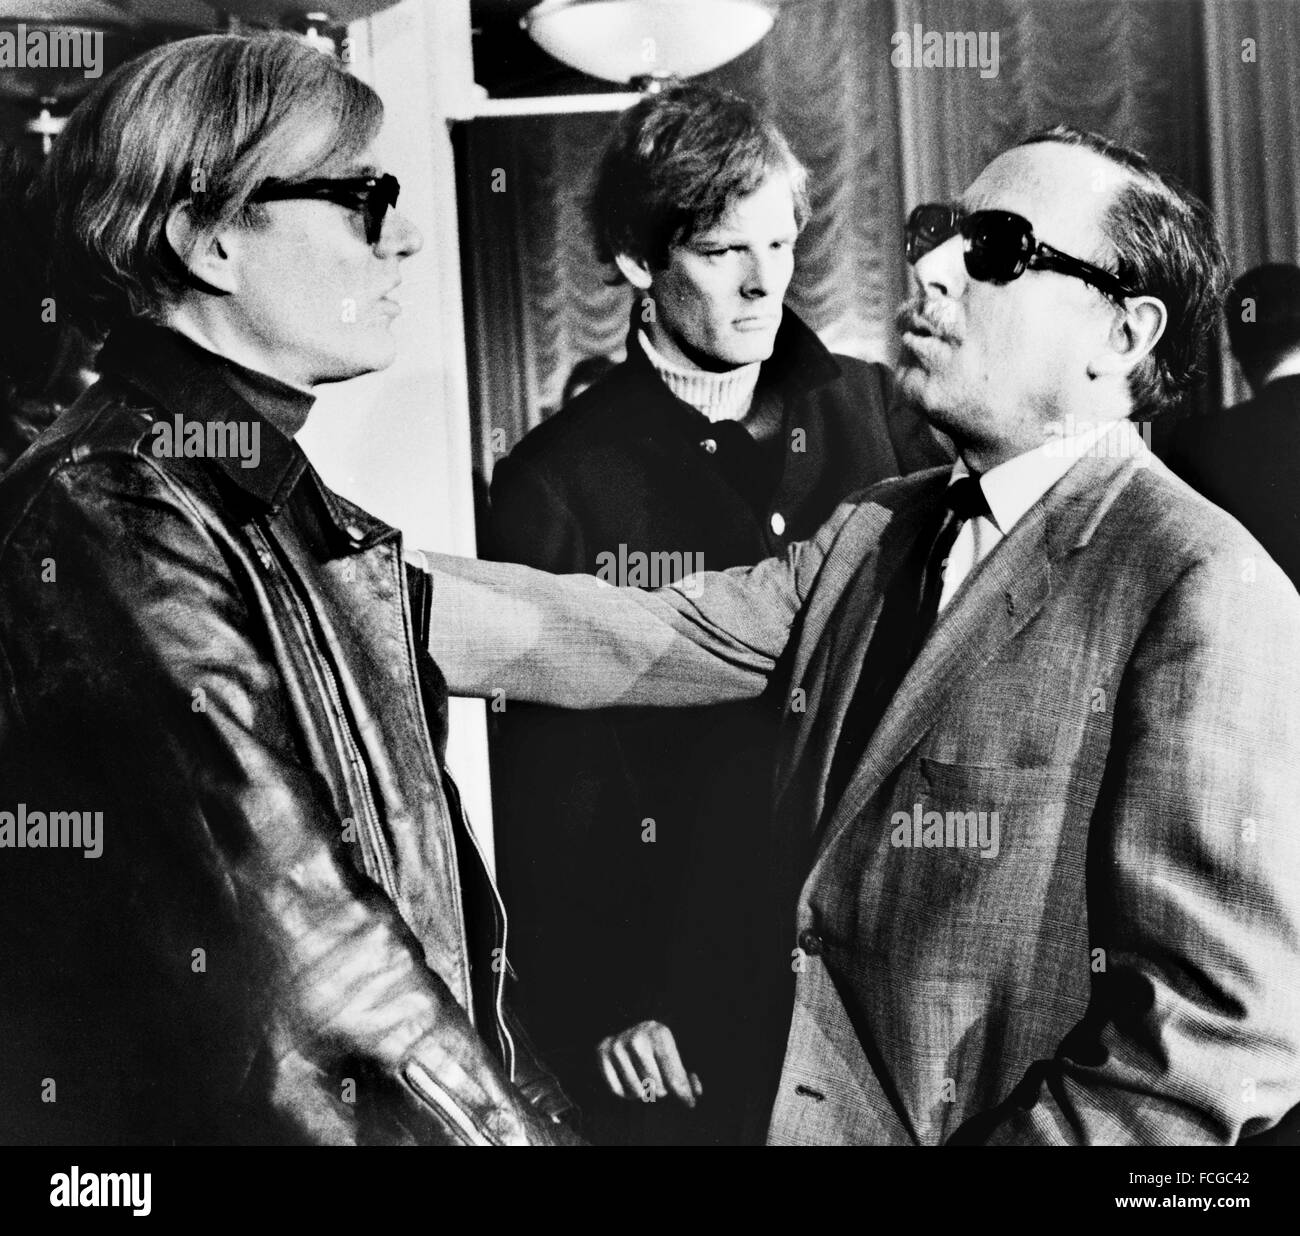 Artist Andy Warhol (left) and playwright Tennessee Williams (right) with film director Paul Morrissey in the background), - Stock Image